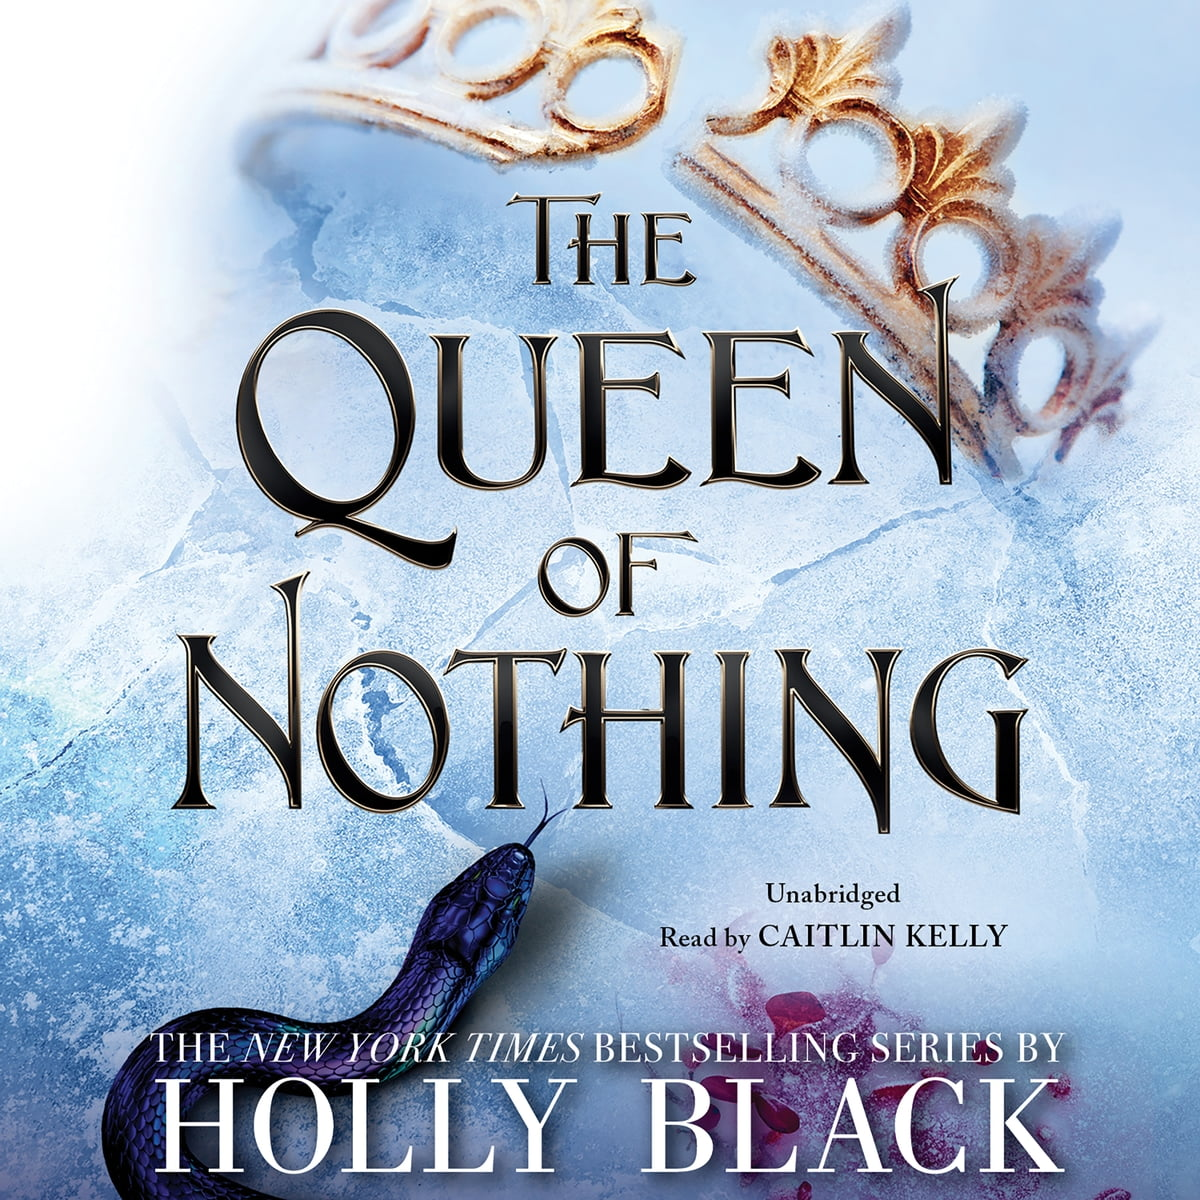 The Queen of Nothing Audiobook by Holly Black - 9781549150173 ...